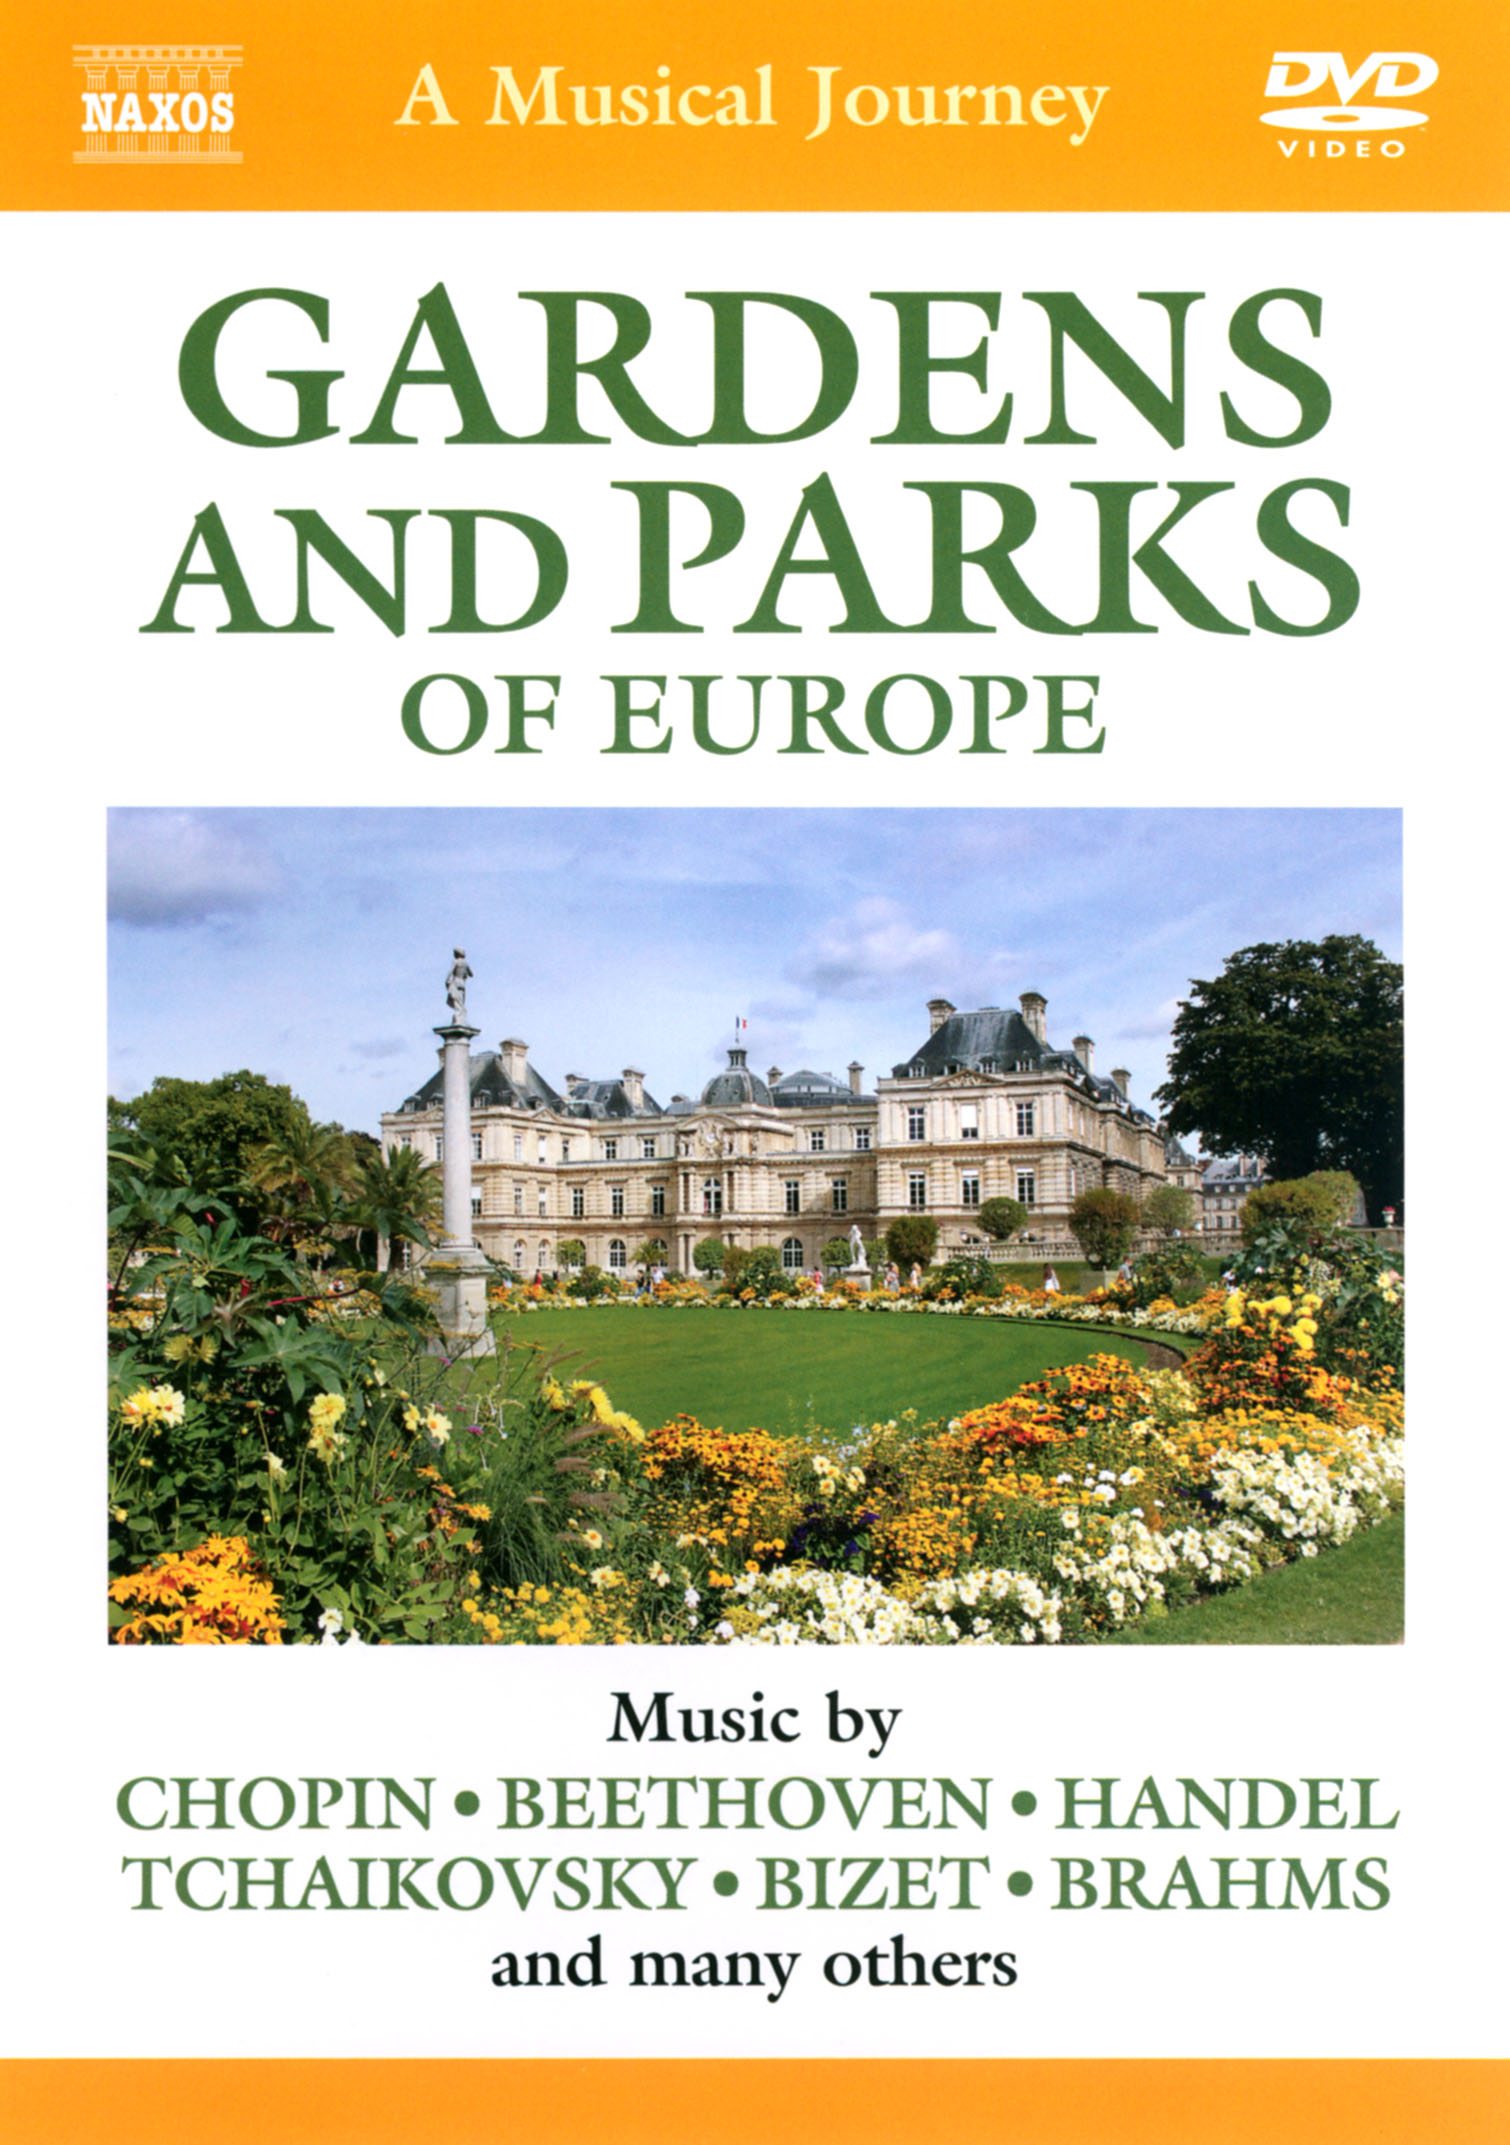 A Musical Journey: Gardens and Parks of Europe